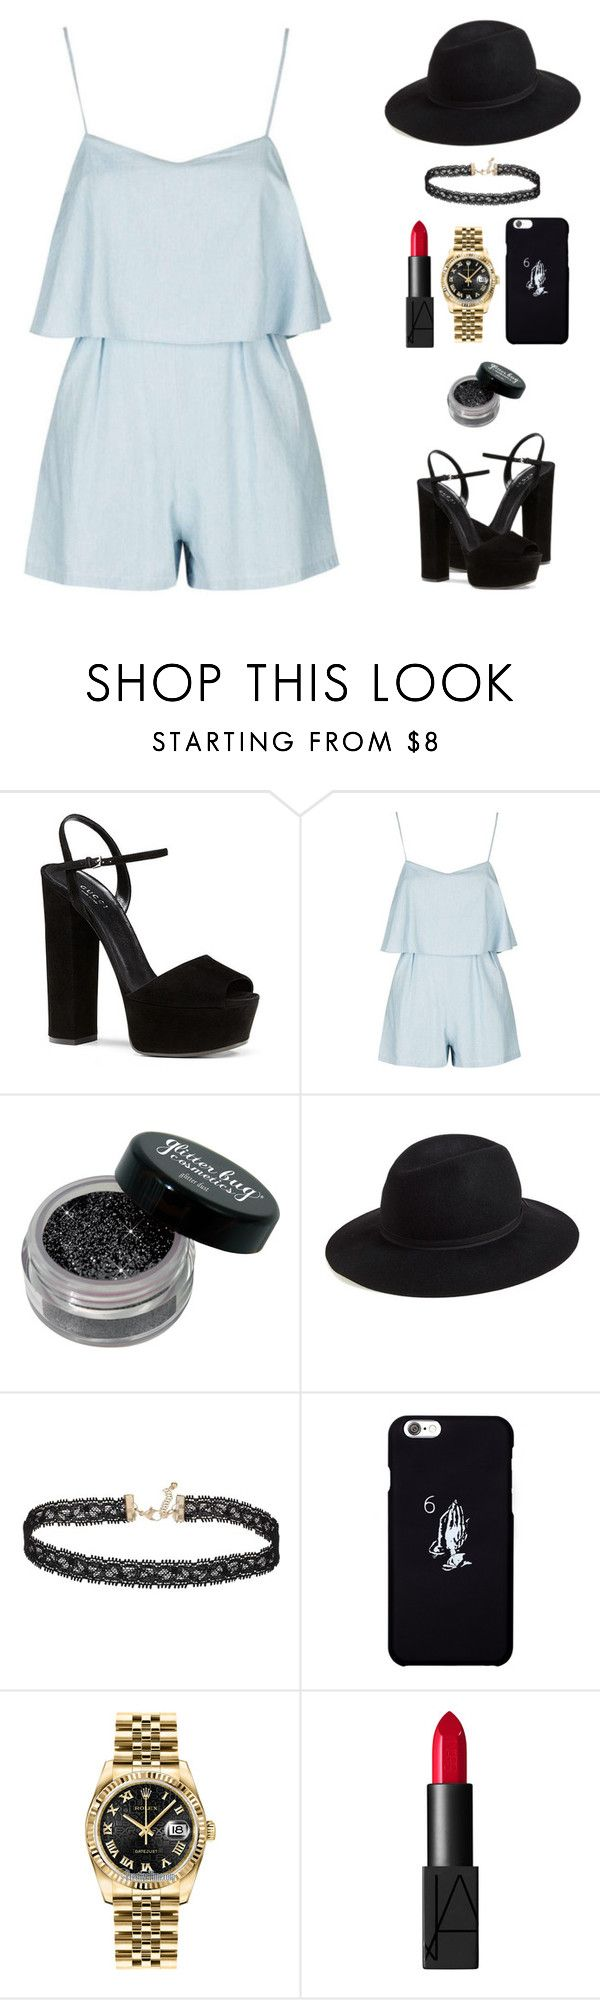 """Untitled #1671"" by i-am-leia ❤ liked on Polyvore featuring Gucci, Hinge, Miss Selfridge, October's Very Own, Rolex and NARS Cosmetics"